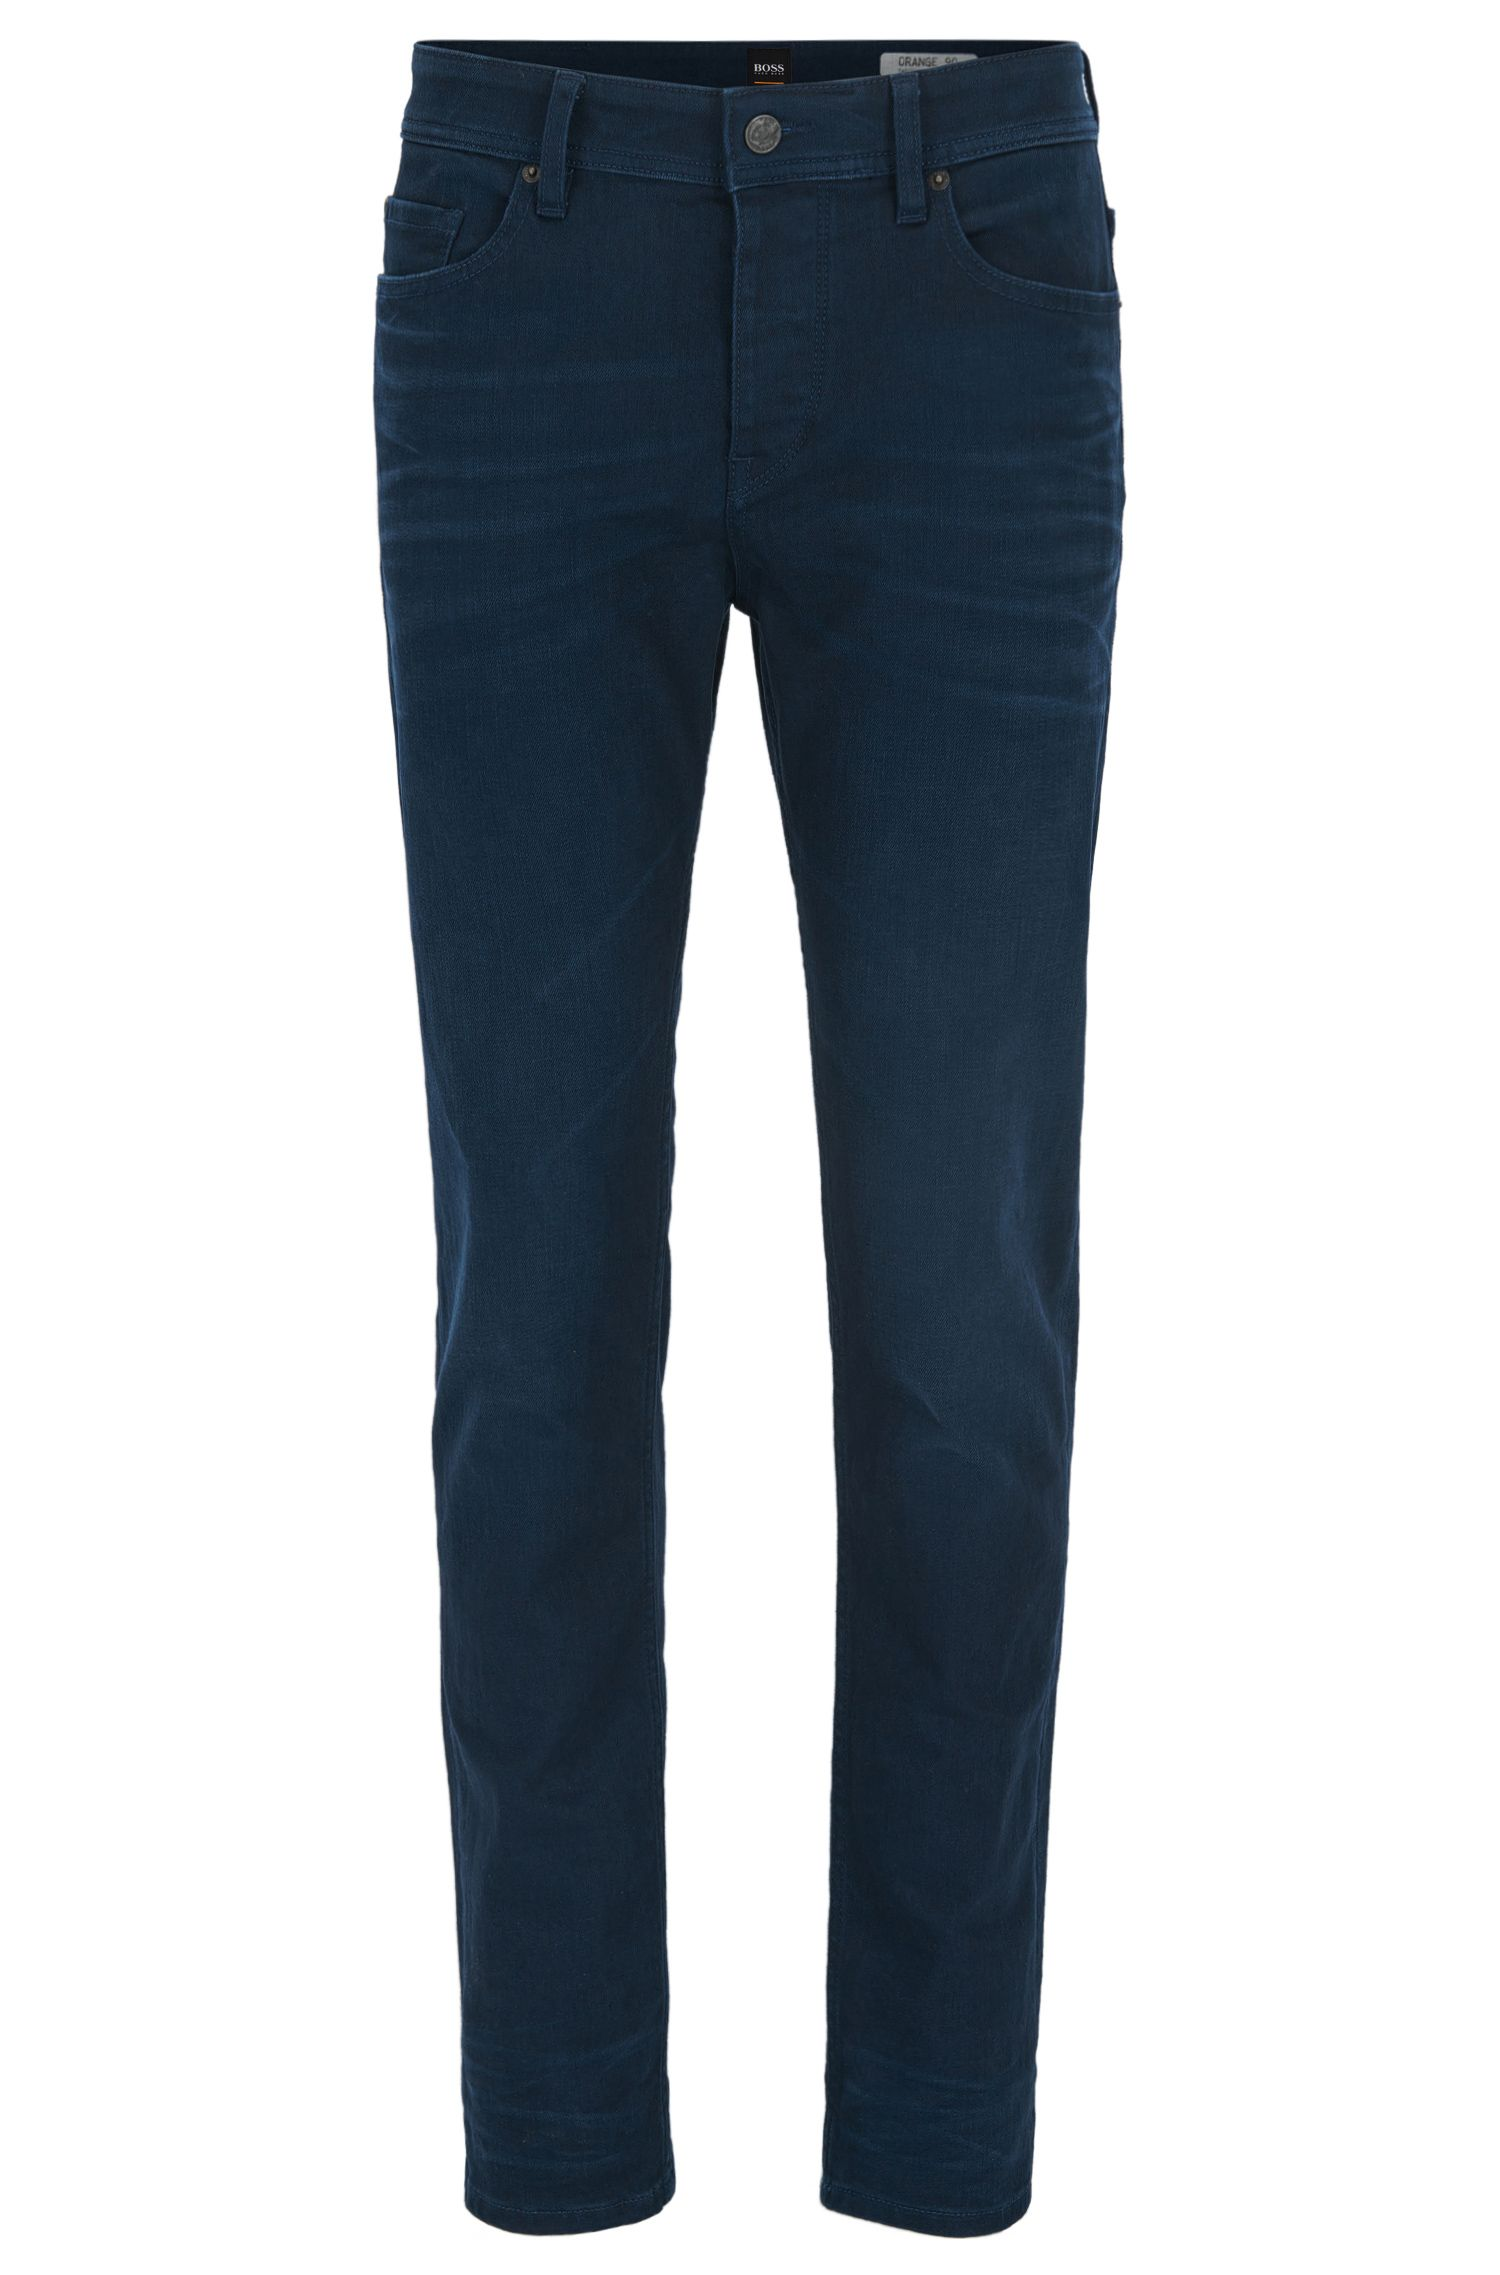 Dunkle Tapered-Fit Jeans aus Stretch-Denim